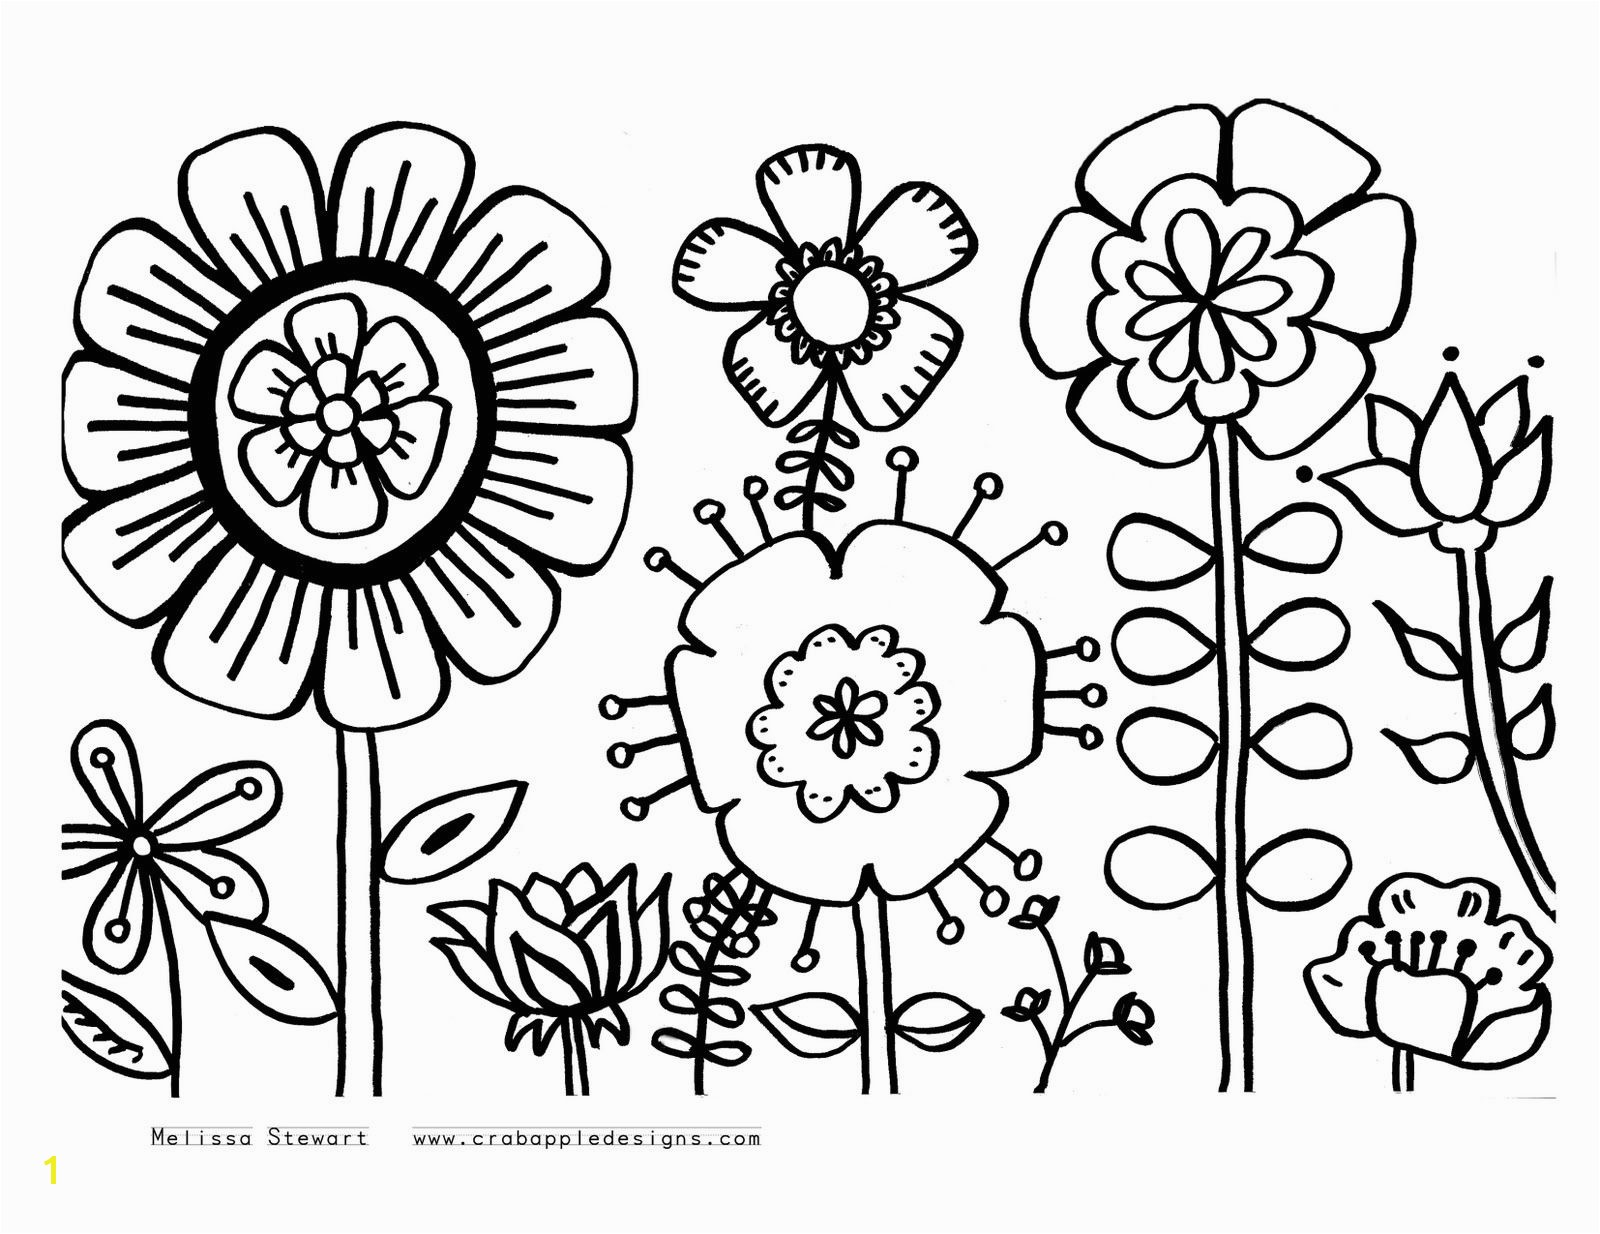 Flowers Coloring Pages Print Flower Coloring Pages Paint Sample butterflies